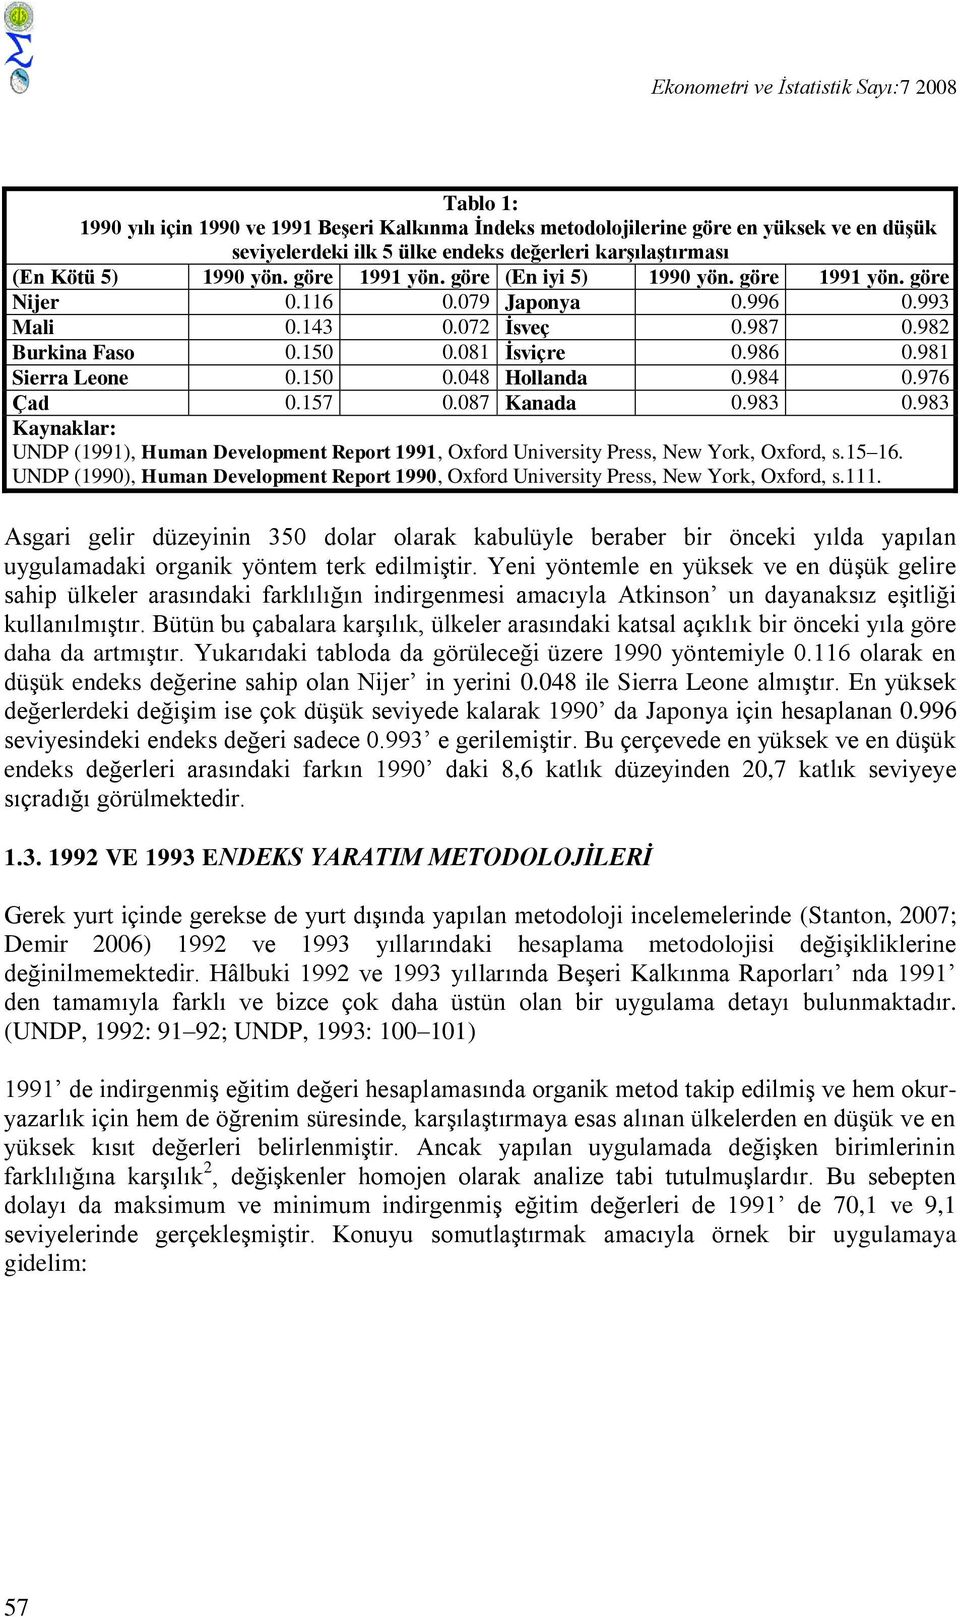 150 0.048 Hollanda 0.984 0.976 Çad 0.157 0.087 Kanada 0.983 0.983 Kaynaklar: UNDP (1991), Human Development Report 1991, Oxford Unversty Press, New York, Oxford, s.15 16.